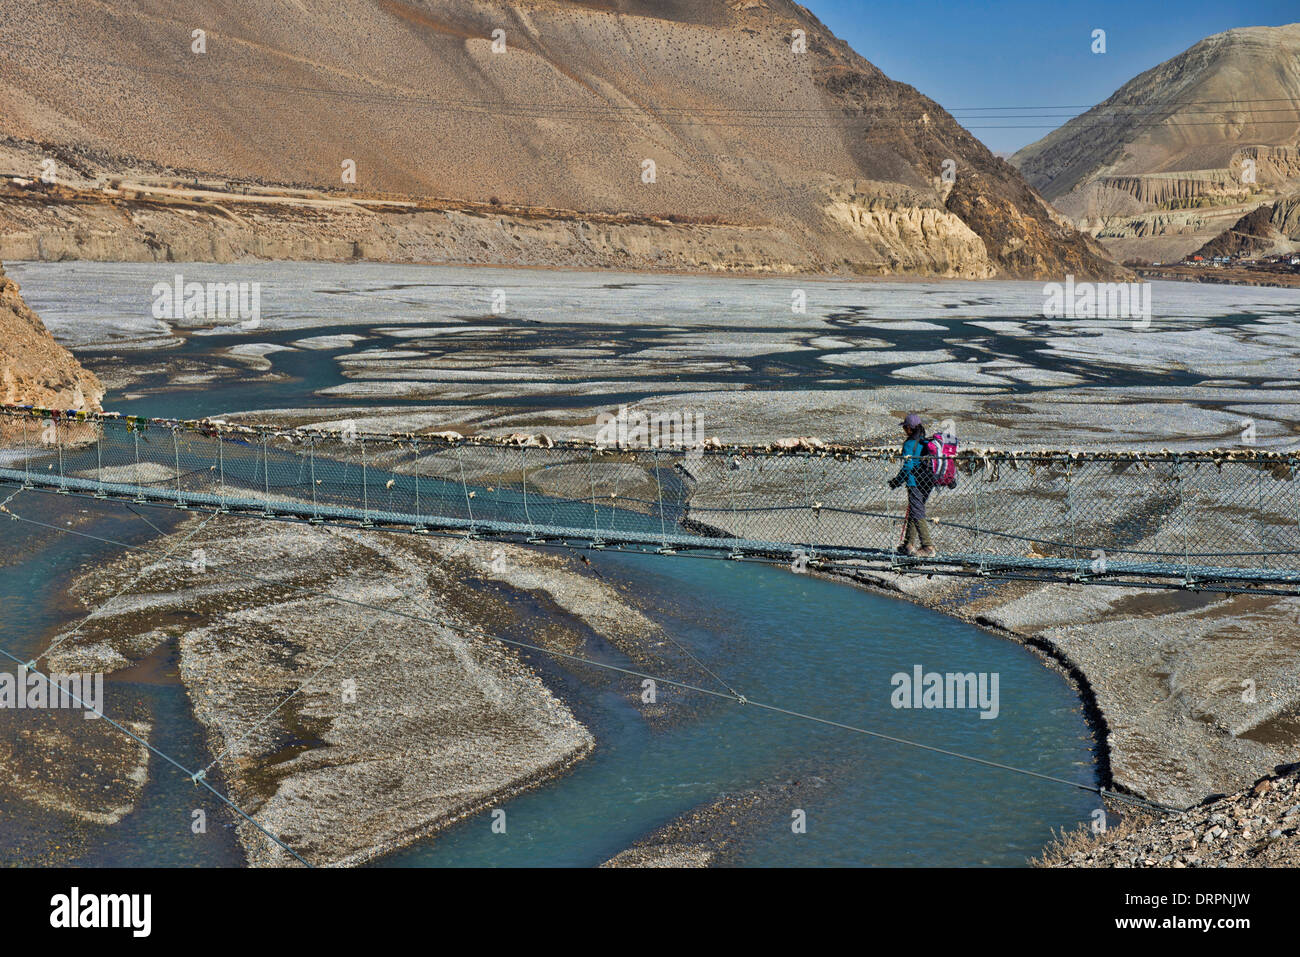 looking up the Kali Gandaki River into the Kingdom of Mustang in the Annapurna region of Nepal - Stock Image